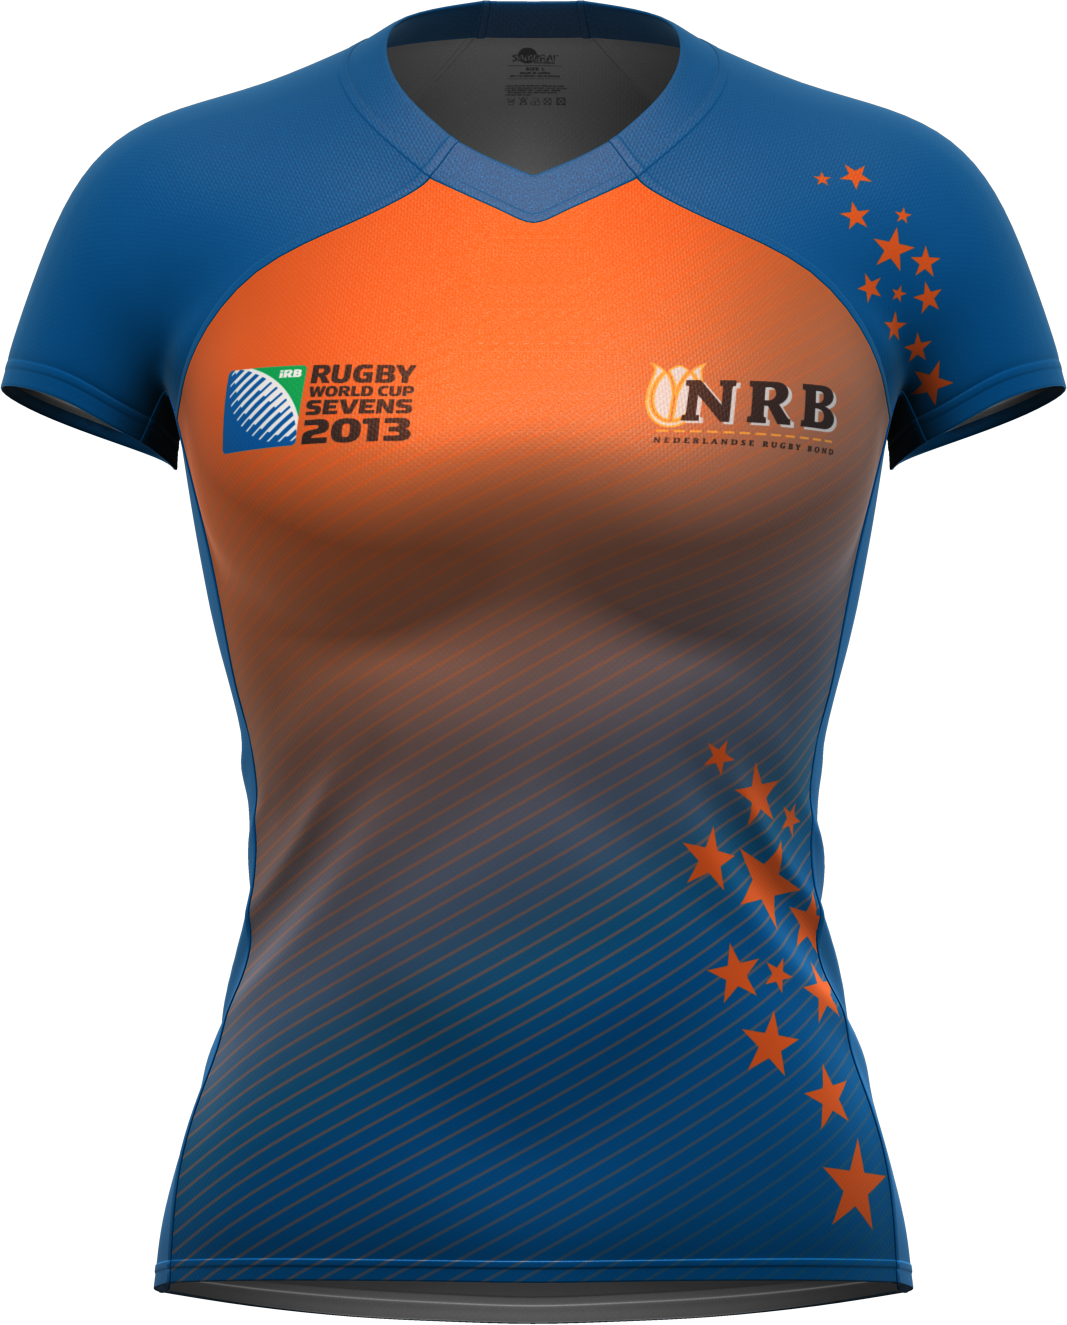 66eaaaac9 Dutch international rugby jersey - Part of Holland women s away rugby kit  by Samurai Sportwear for the last rugby sevens world cup.